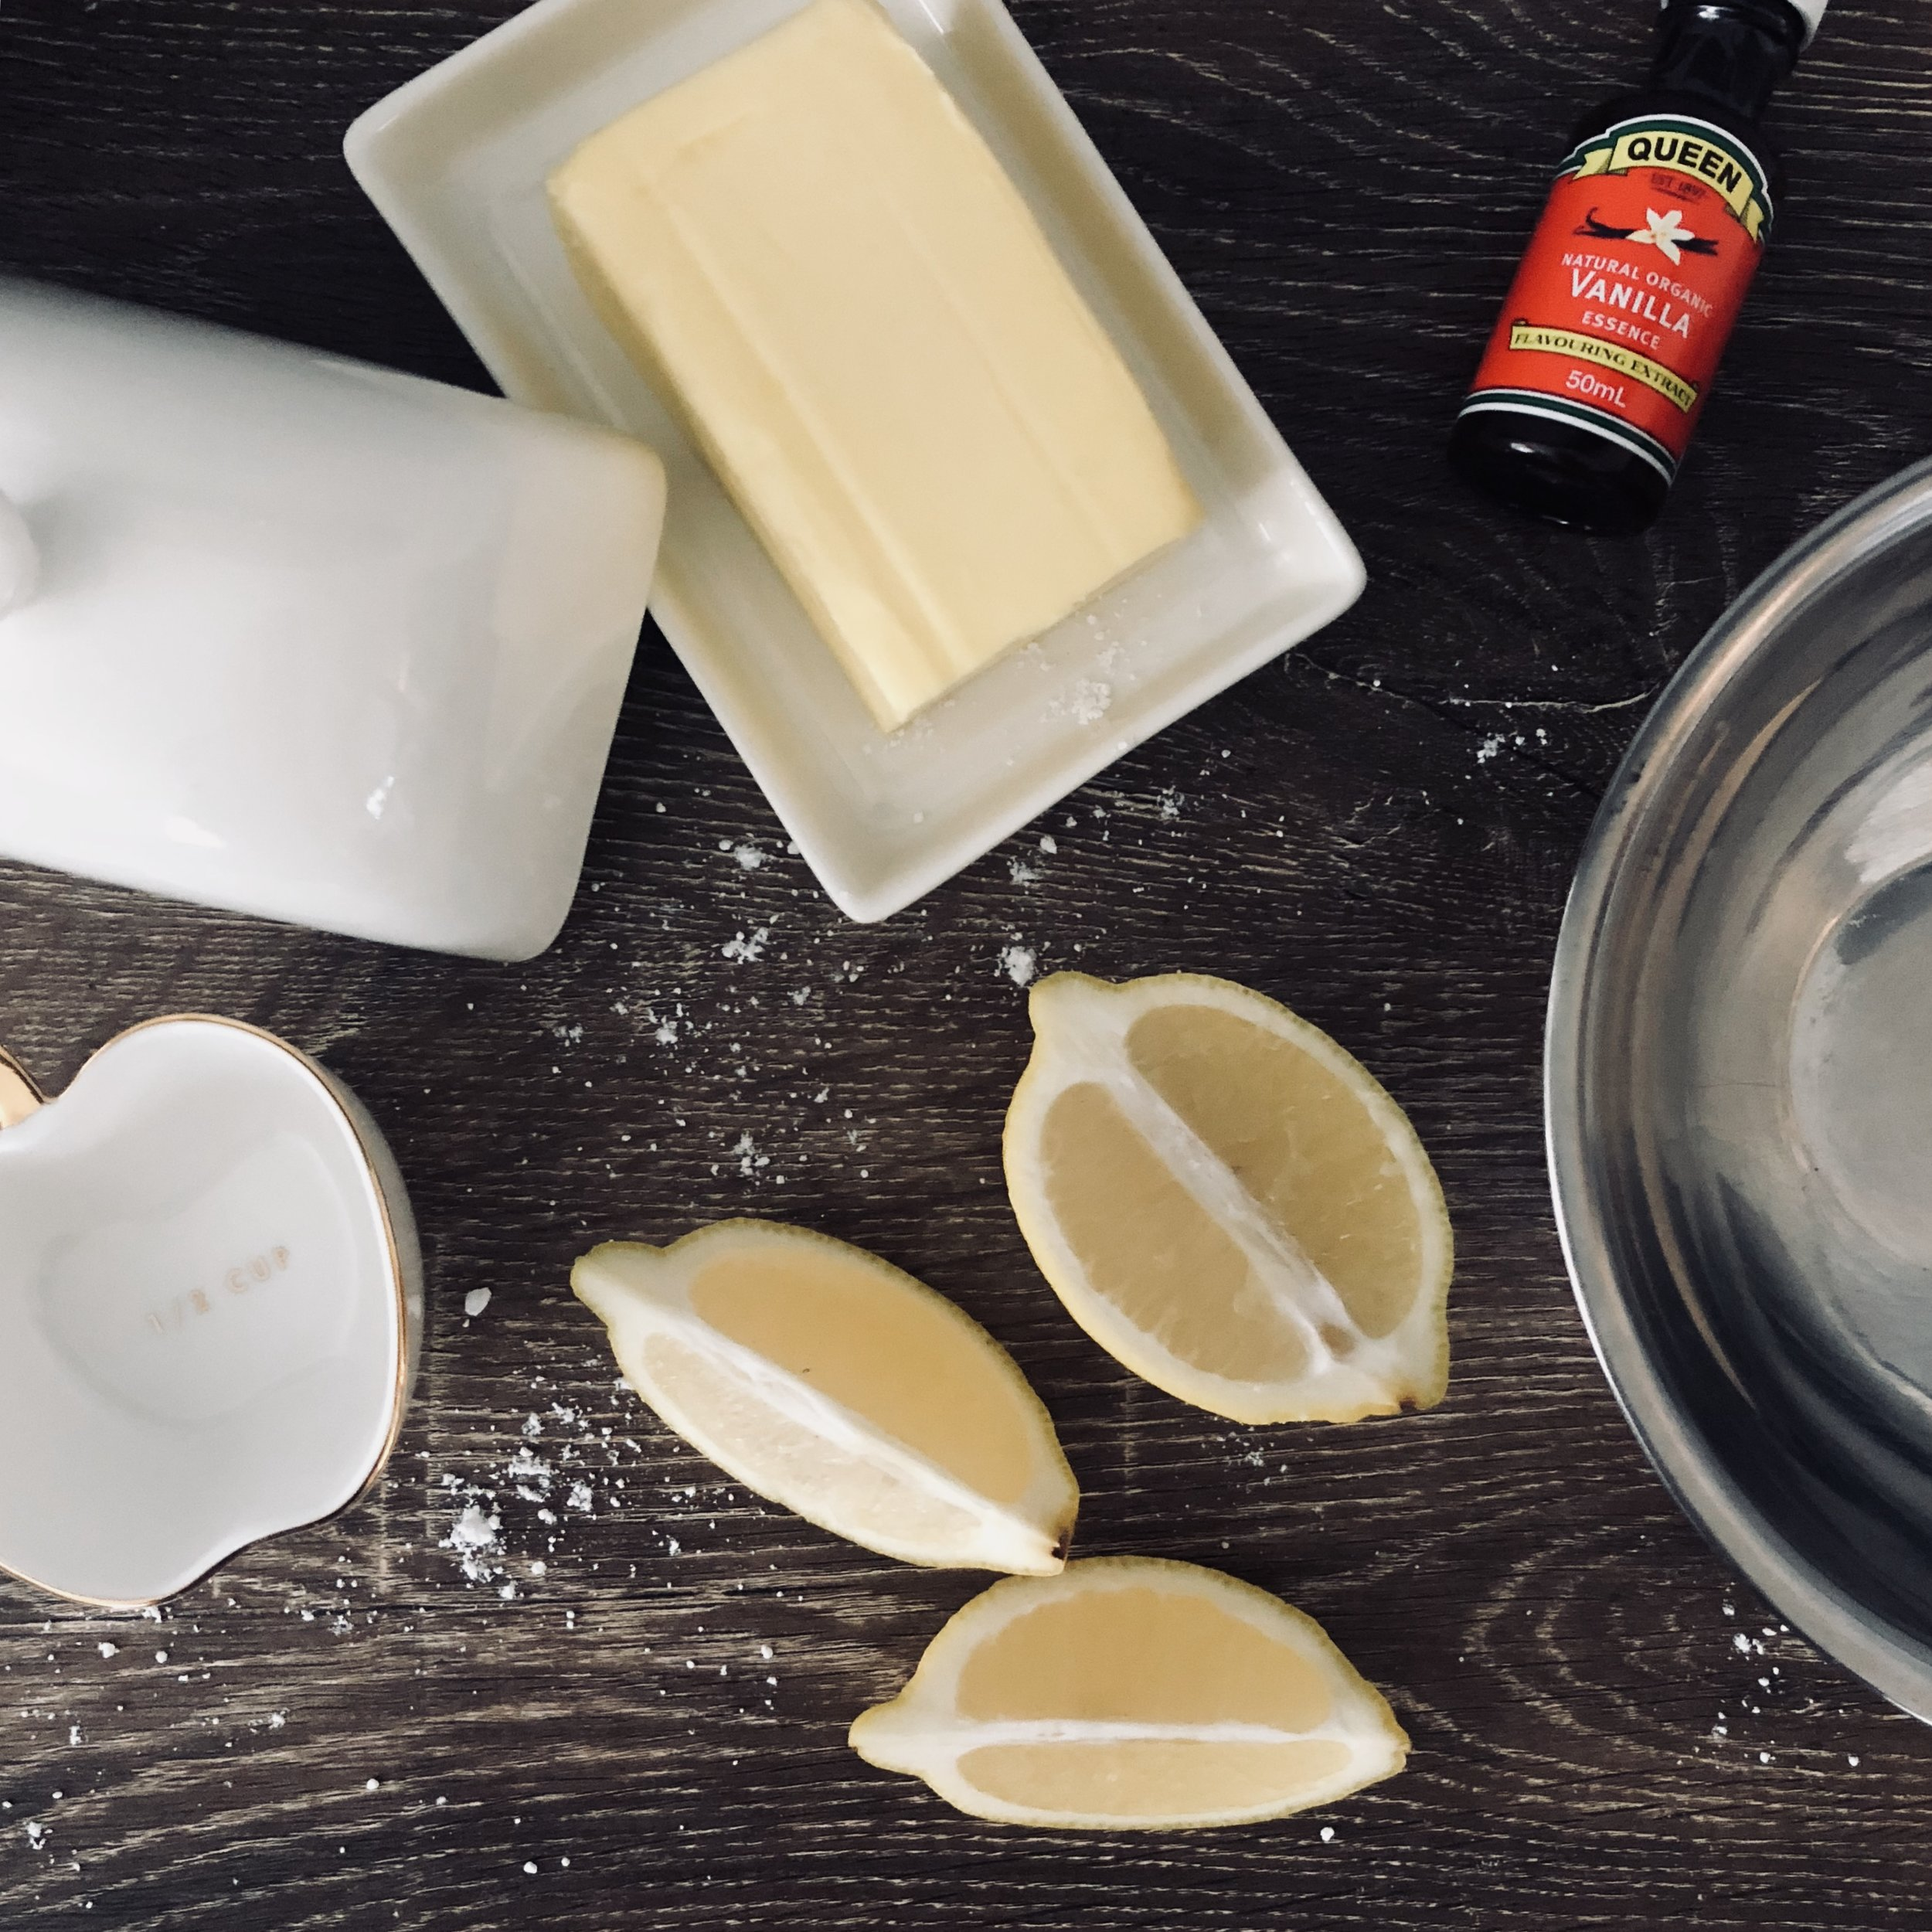 Icing Ingredients - 125G BUTTER2 TBS LEMON JUICE1/2 TSP VANILLA ESSENCE3 CUPS OF ICING SUGAR